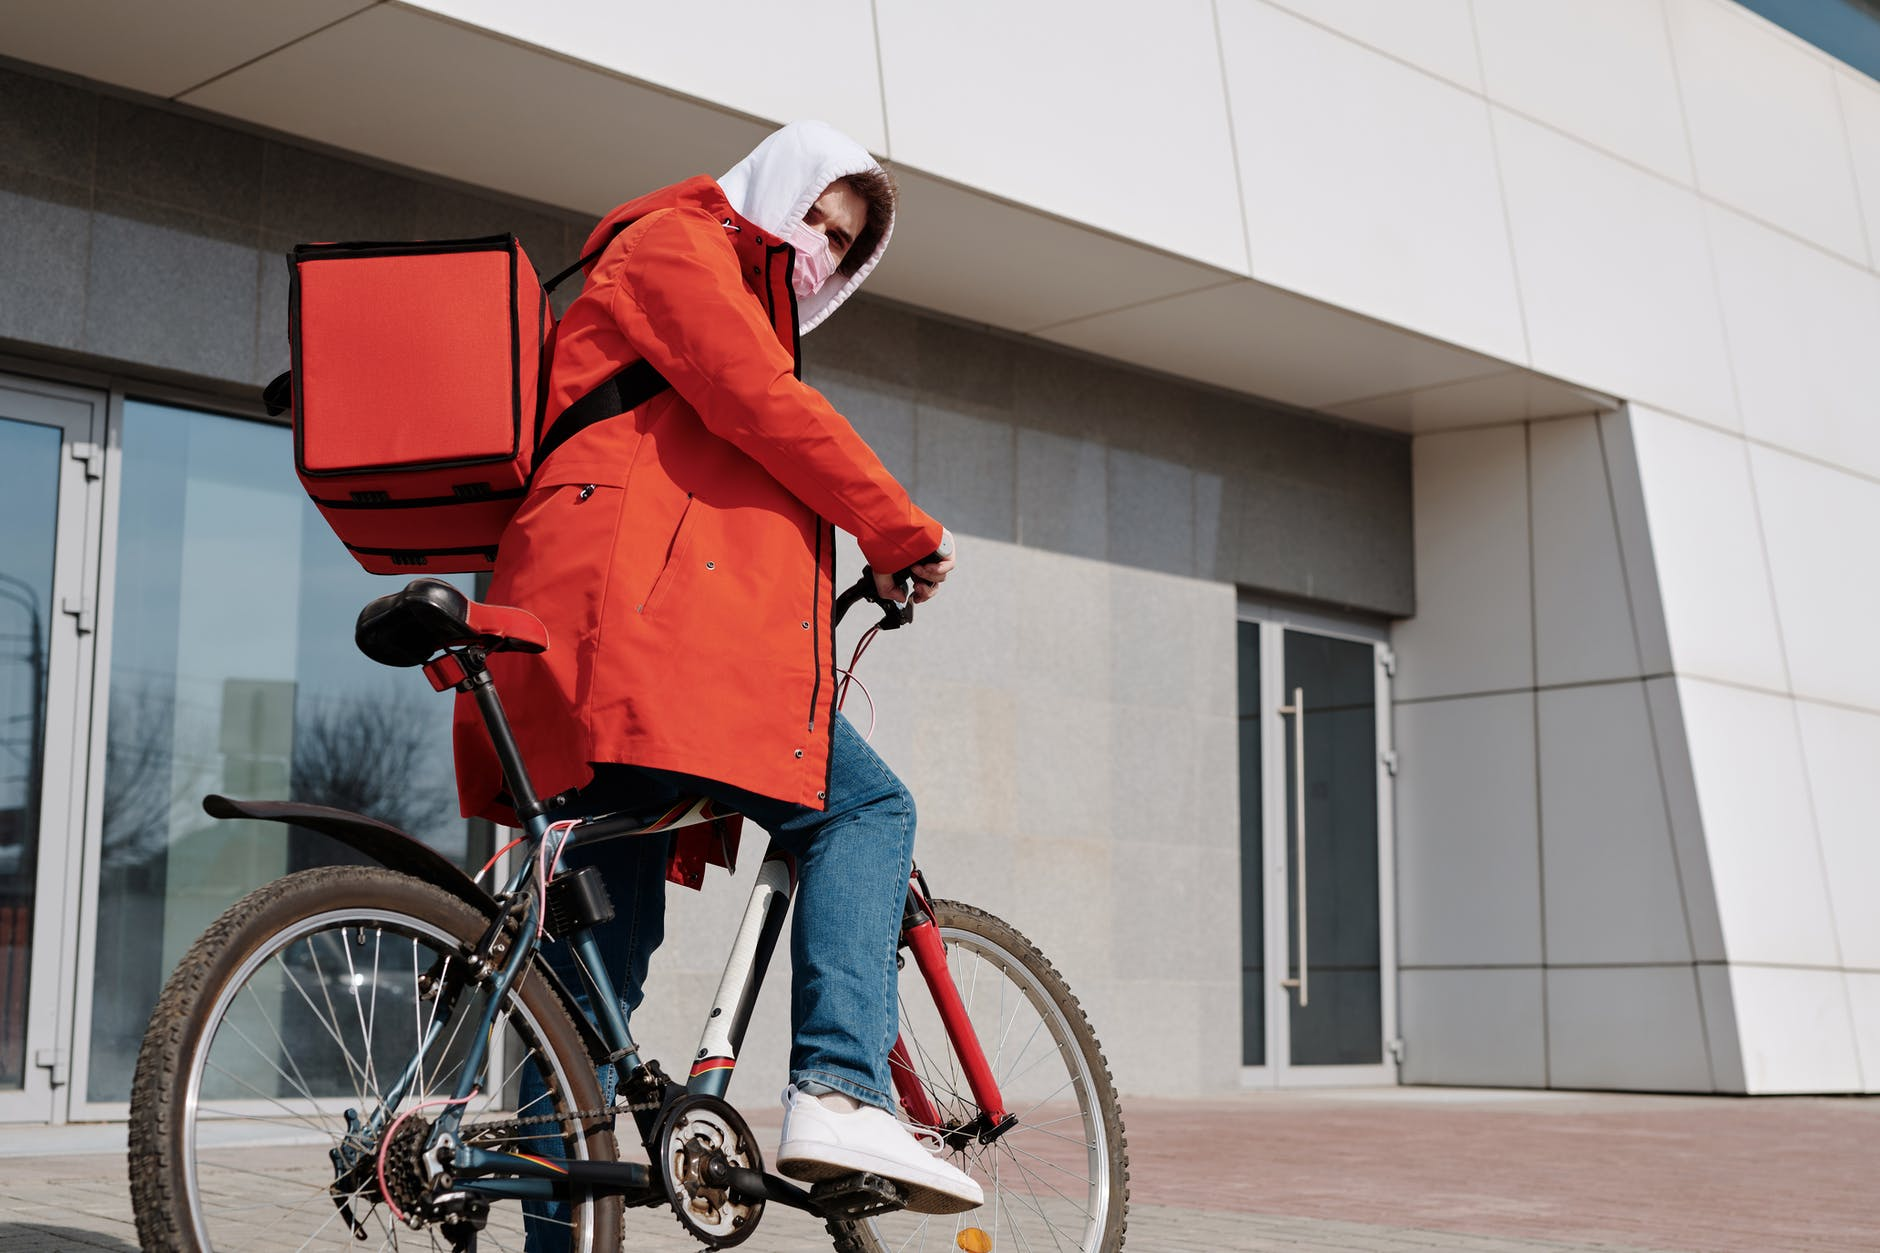 delivery man with a face mask riding a bicycle